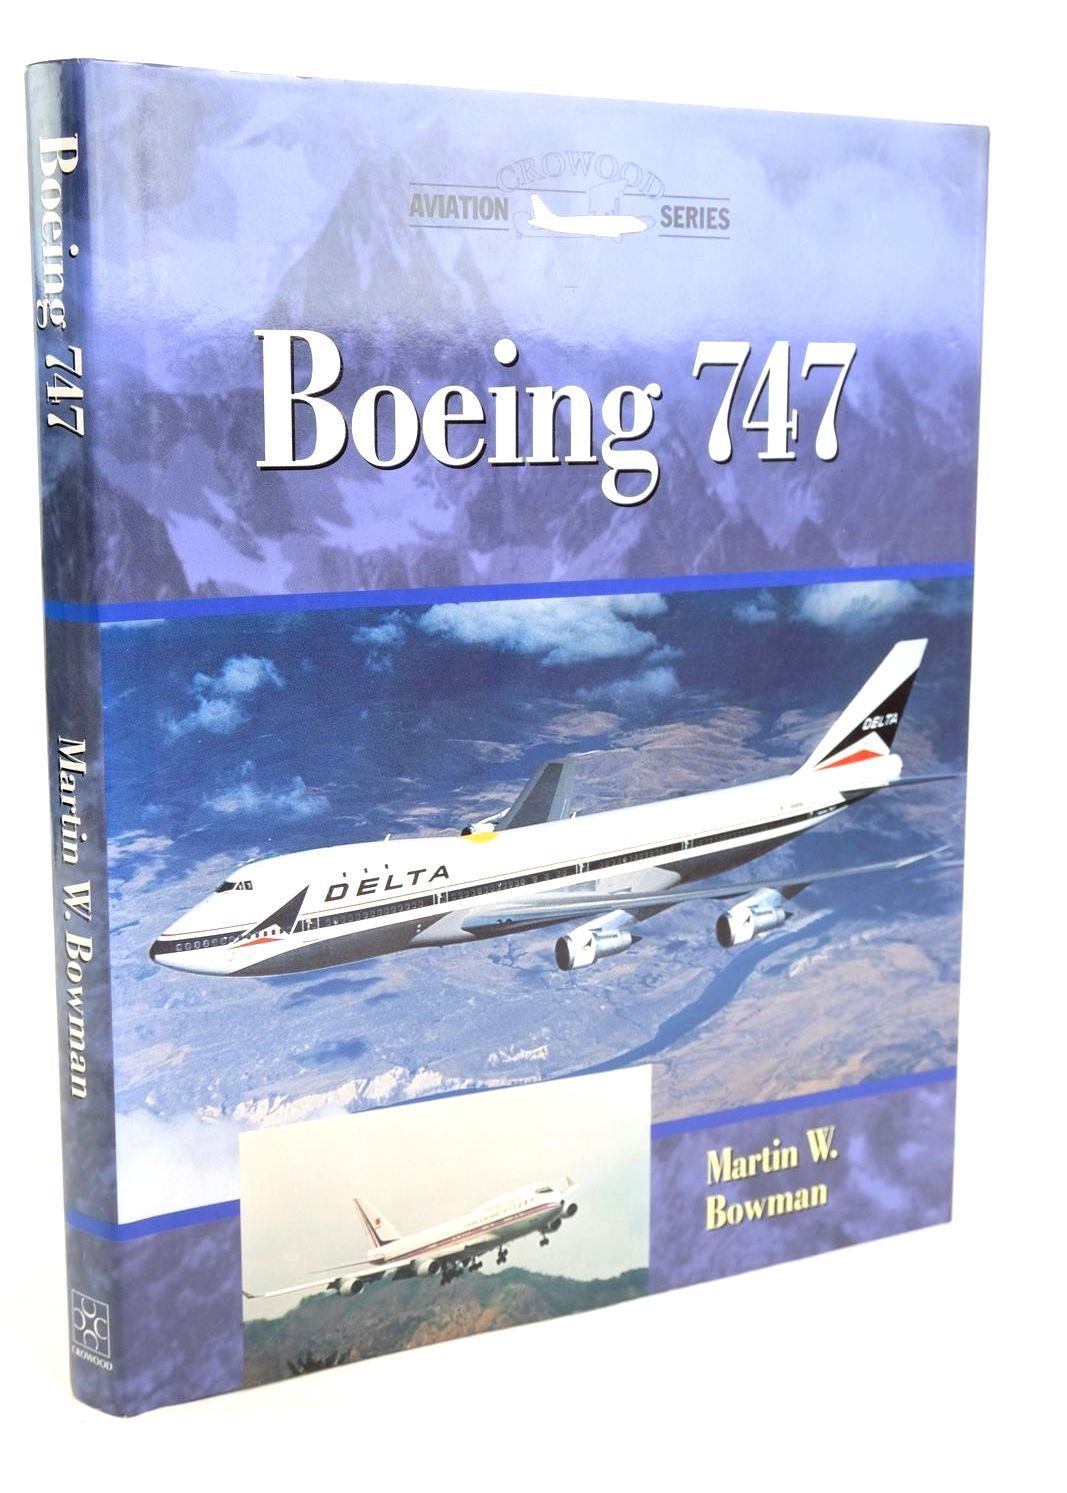 Photo of BOEING 747 written by Bowman, Martin W. published by The Crowood Press (STOCK CODE: 1319611)  for sale by Stella & Rose's Books